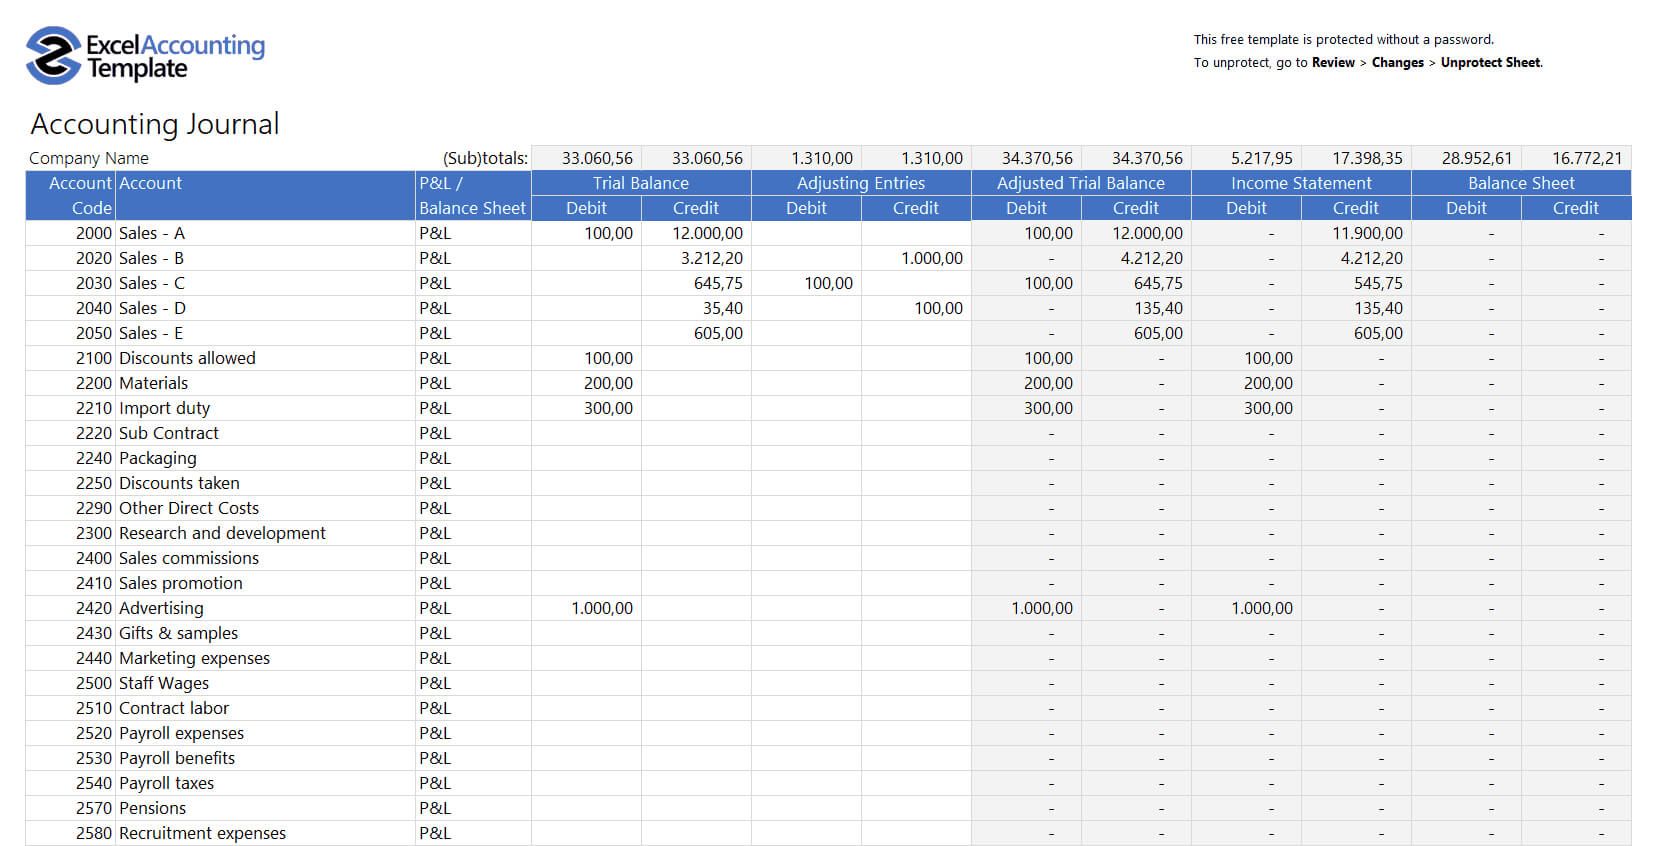 Free Accounting Templates In Excel - Download For Your Business pertaining to Financial Reporting Templates In Excel